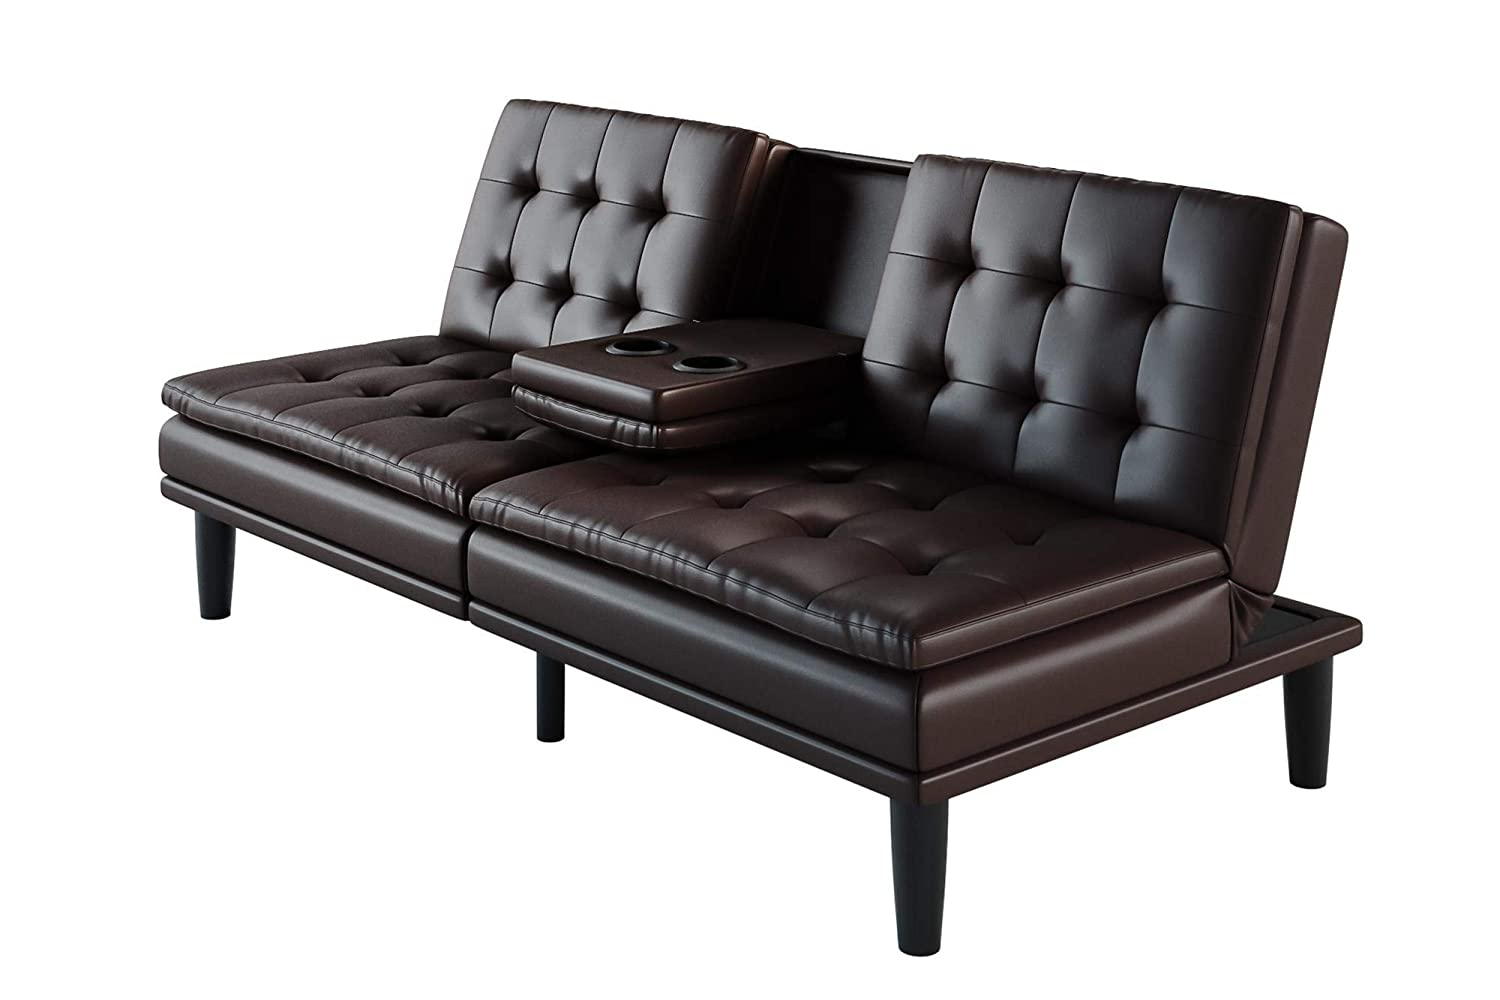 Mainstays.. Long-Lasting and Durable Comfortable Futon (Solid Black,  Leather)